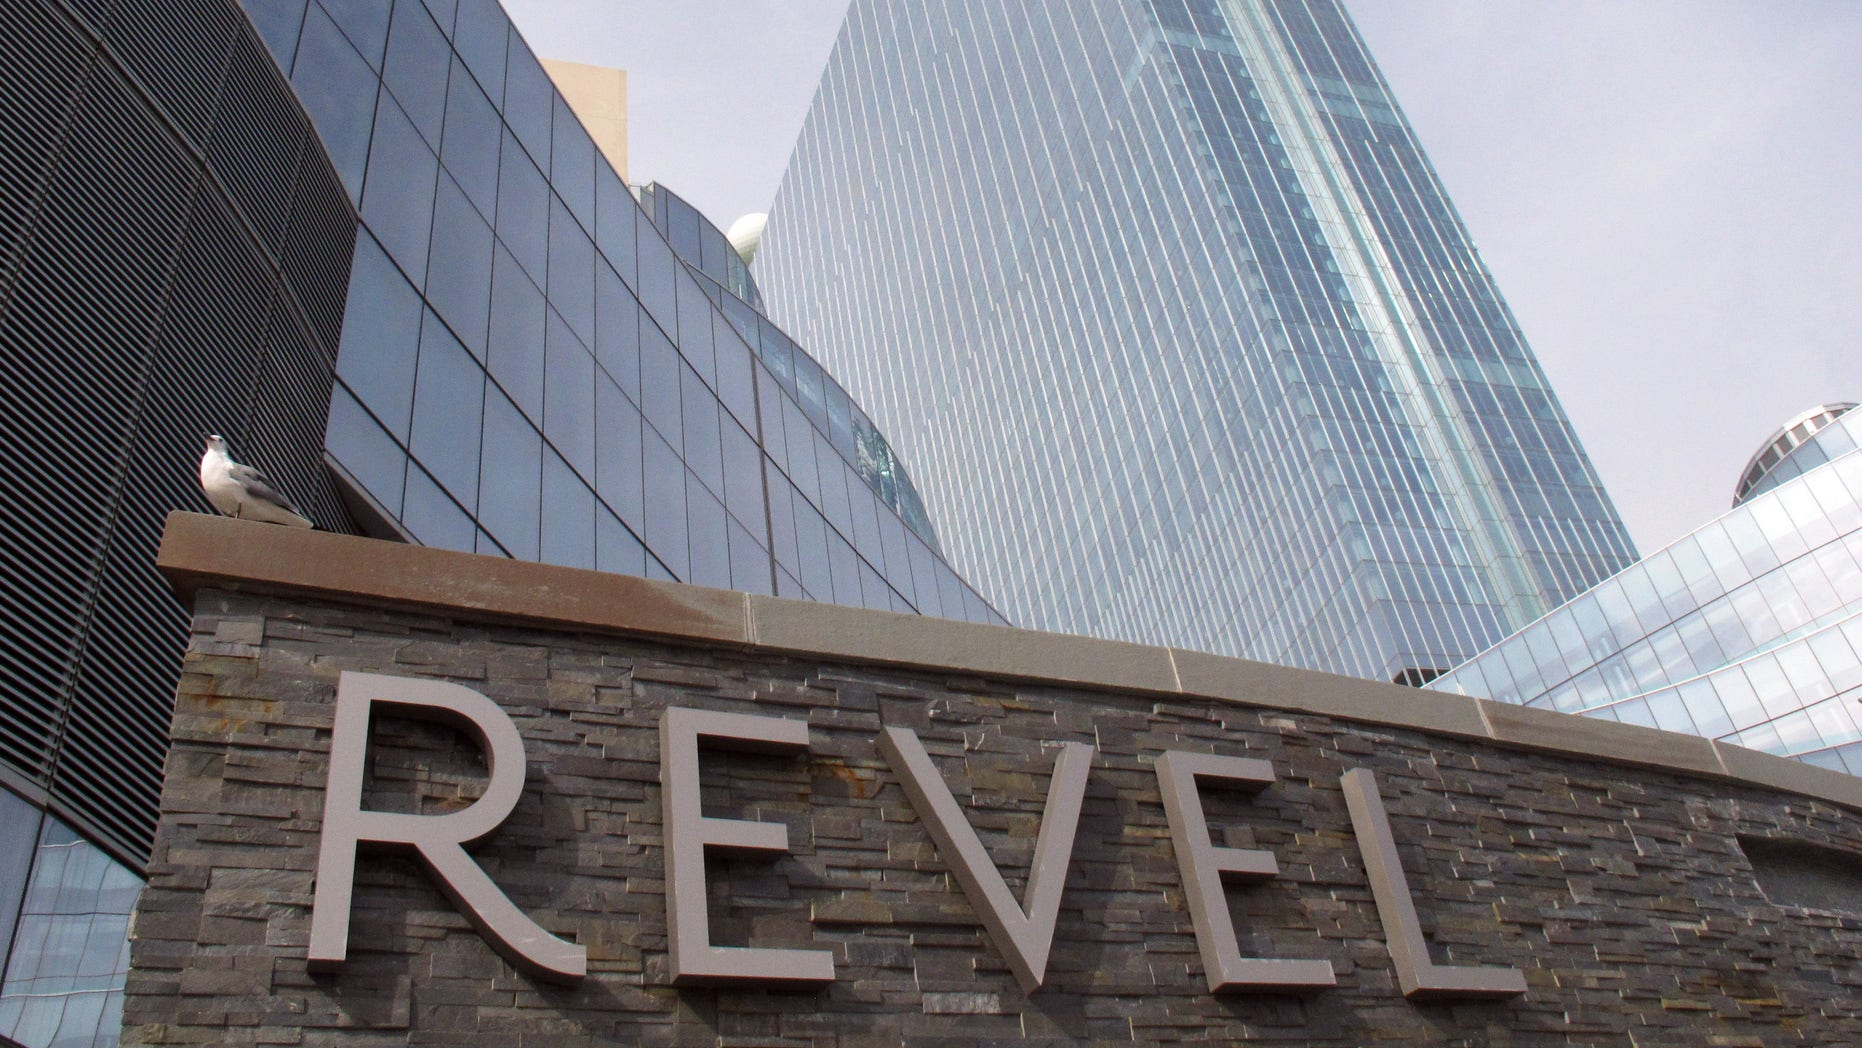 FILE - This Oct. 17, 2012 file photo shows the Revel, Atlantic City, N.J.'s newest casino. Revel, the casino many people had hoped would turn around Atlantic City's sagging fortunes, on Tuesday, Feb. 19, 2013 said that it will file for Chapter 11 bankruptcy protection in March, less than a year after it opened. (AP Photo/Wayne Parry, File)